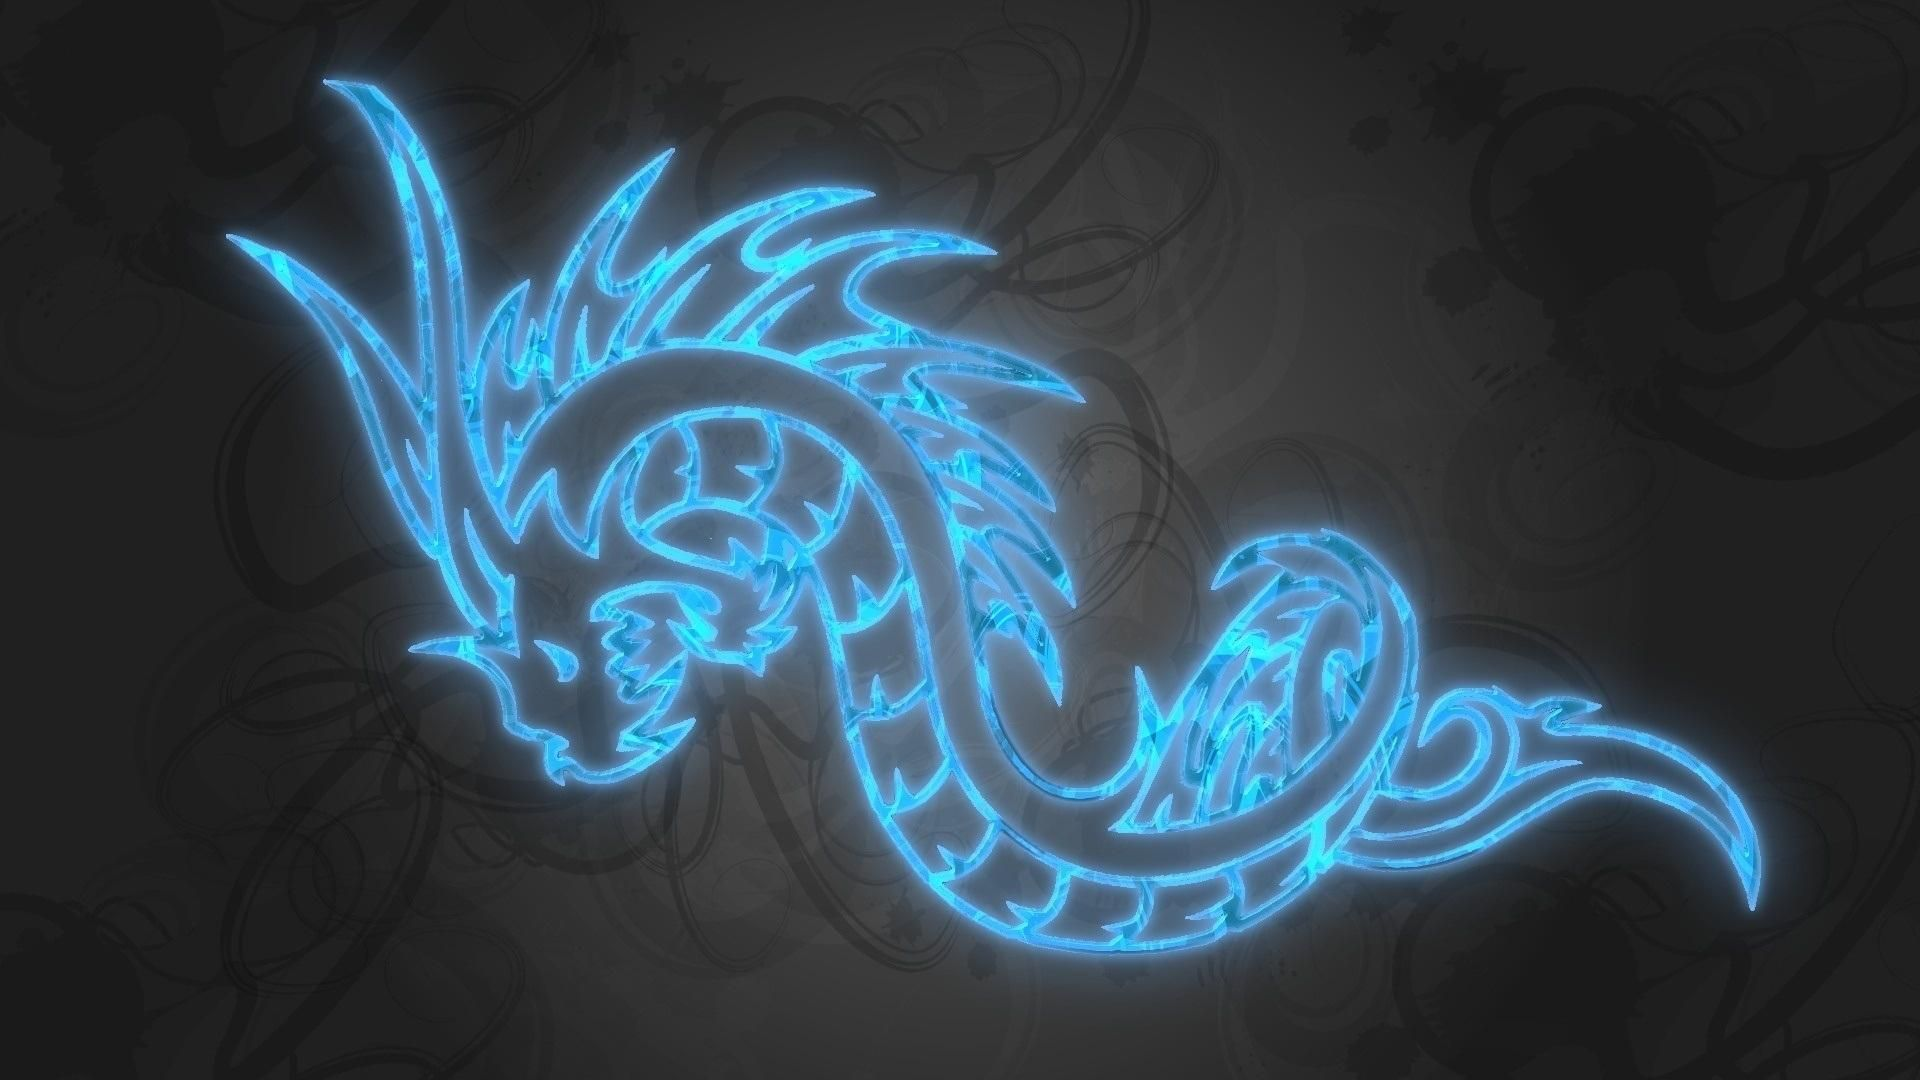 Free And Stunning Dragon Wallpaper Collection GraphicLoads 1920x1080 Dargon Wallpapers